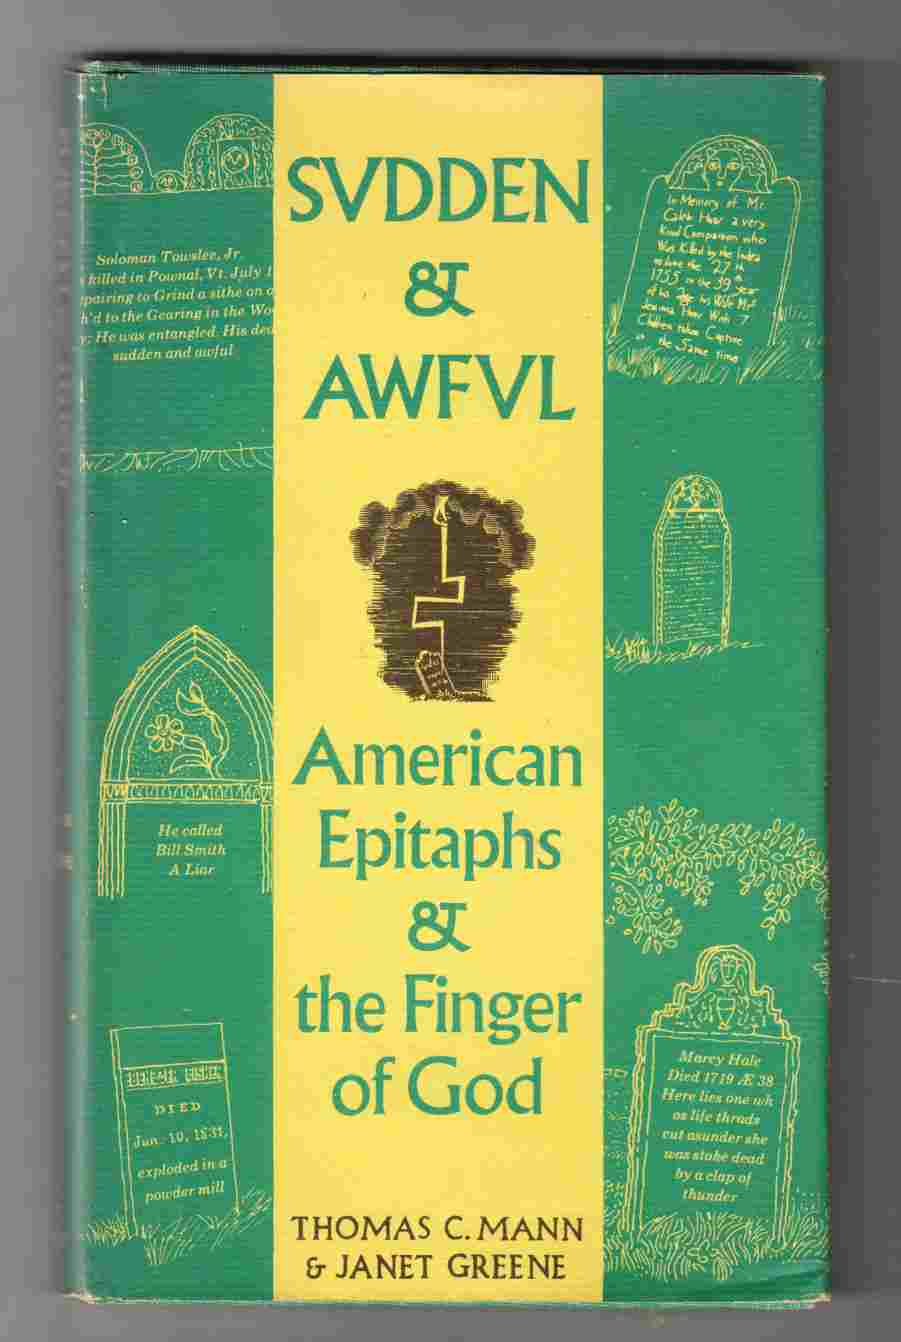 Image for Sudden and Awful American Epitaphs and the Finger of God